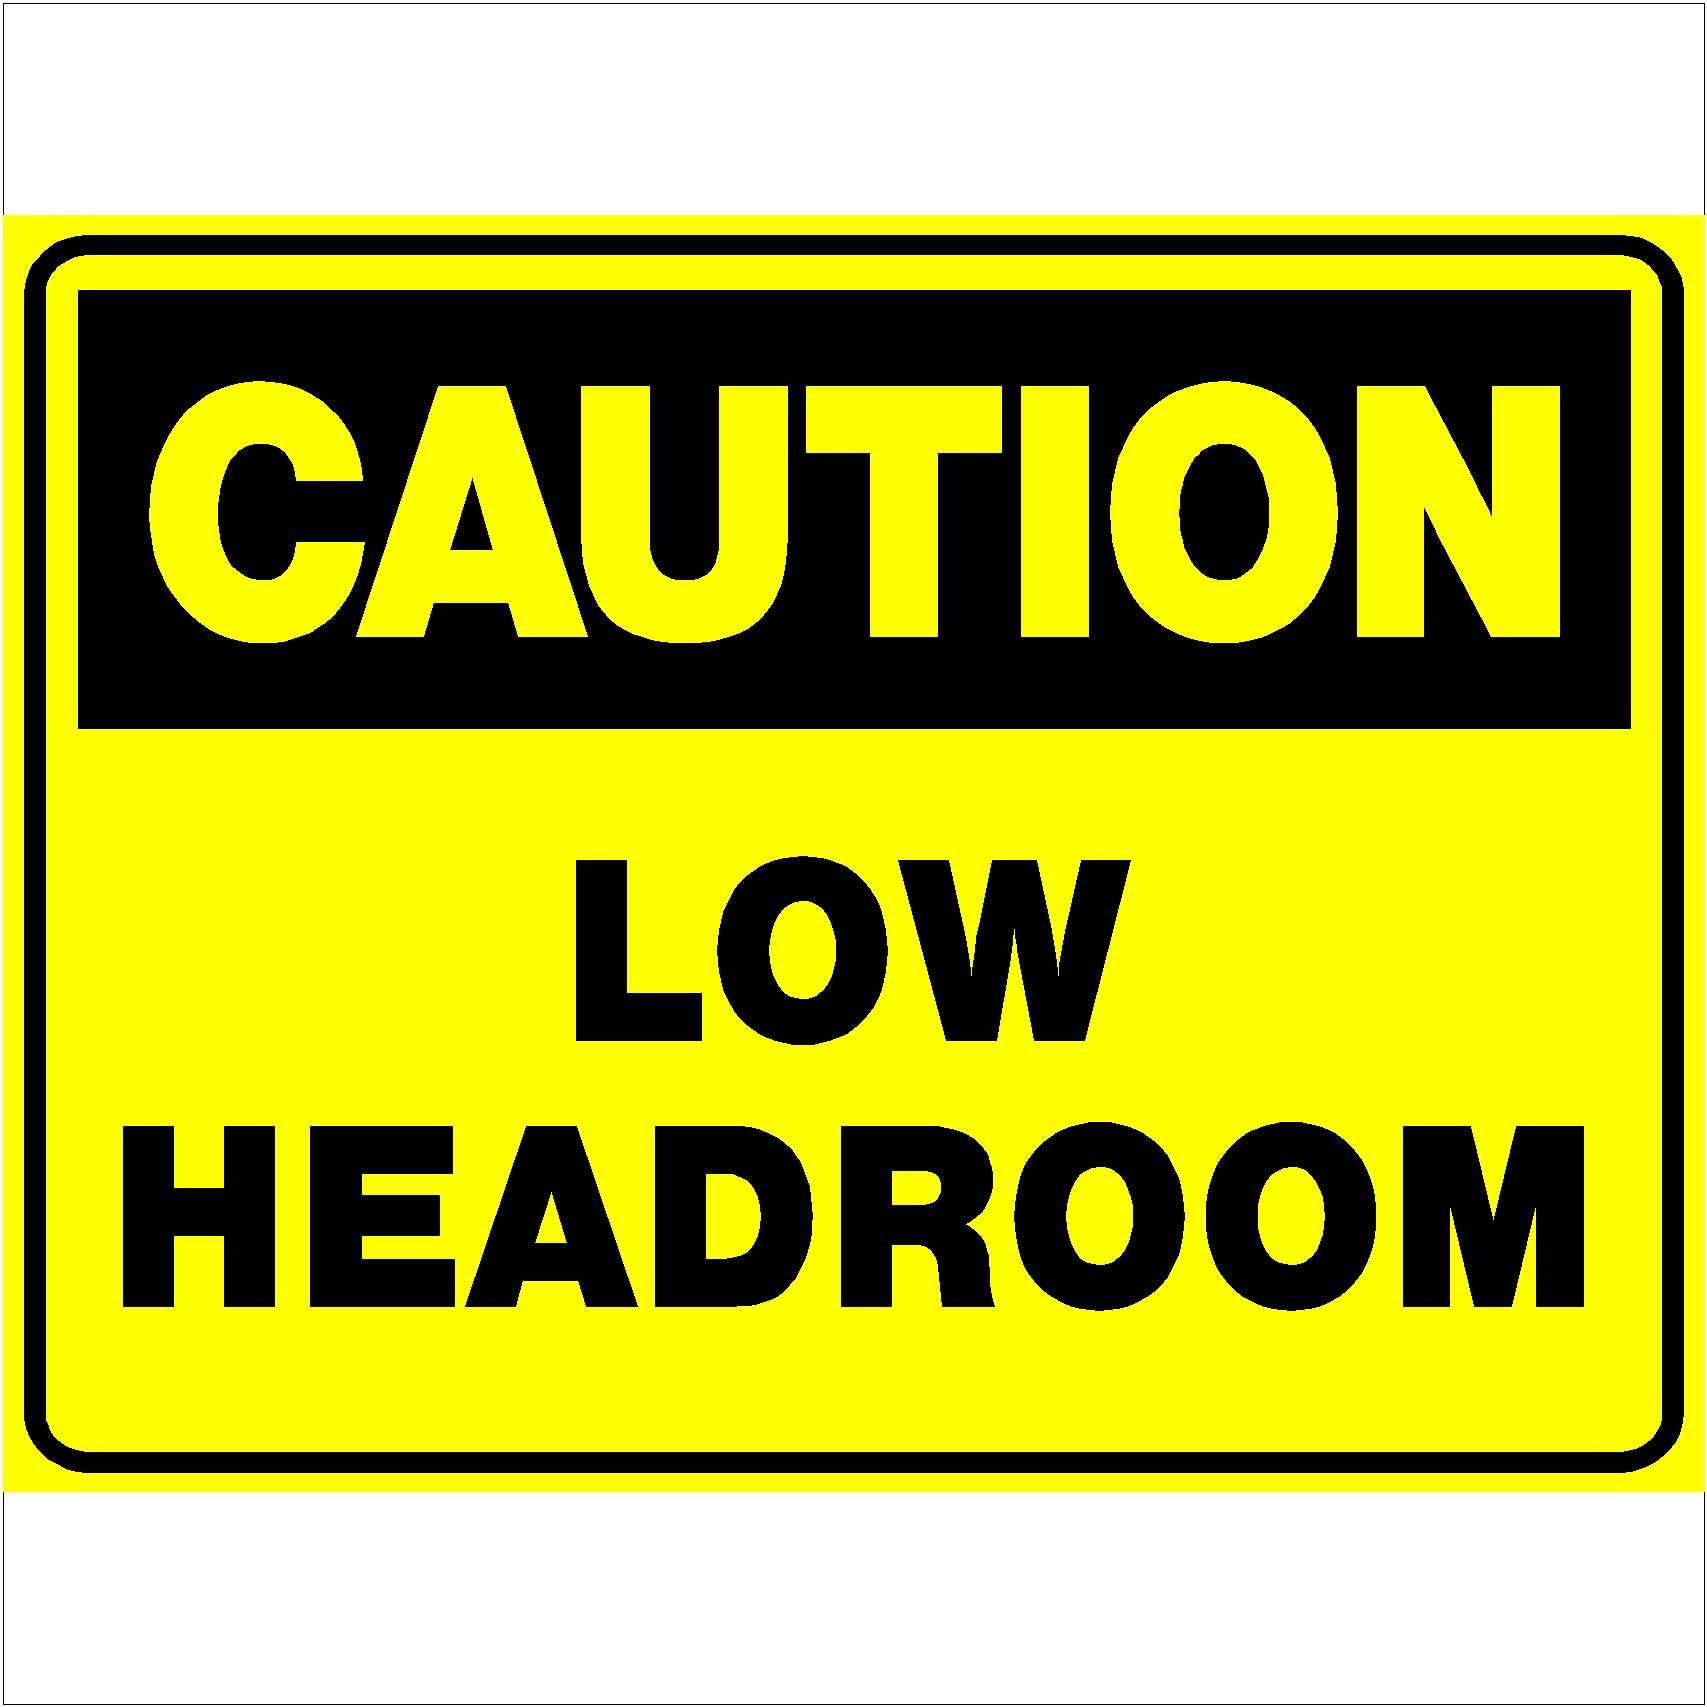 Caution Low Headroom